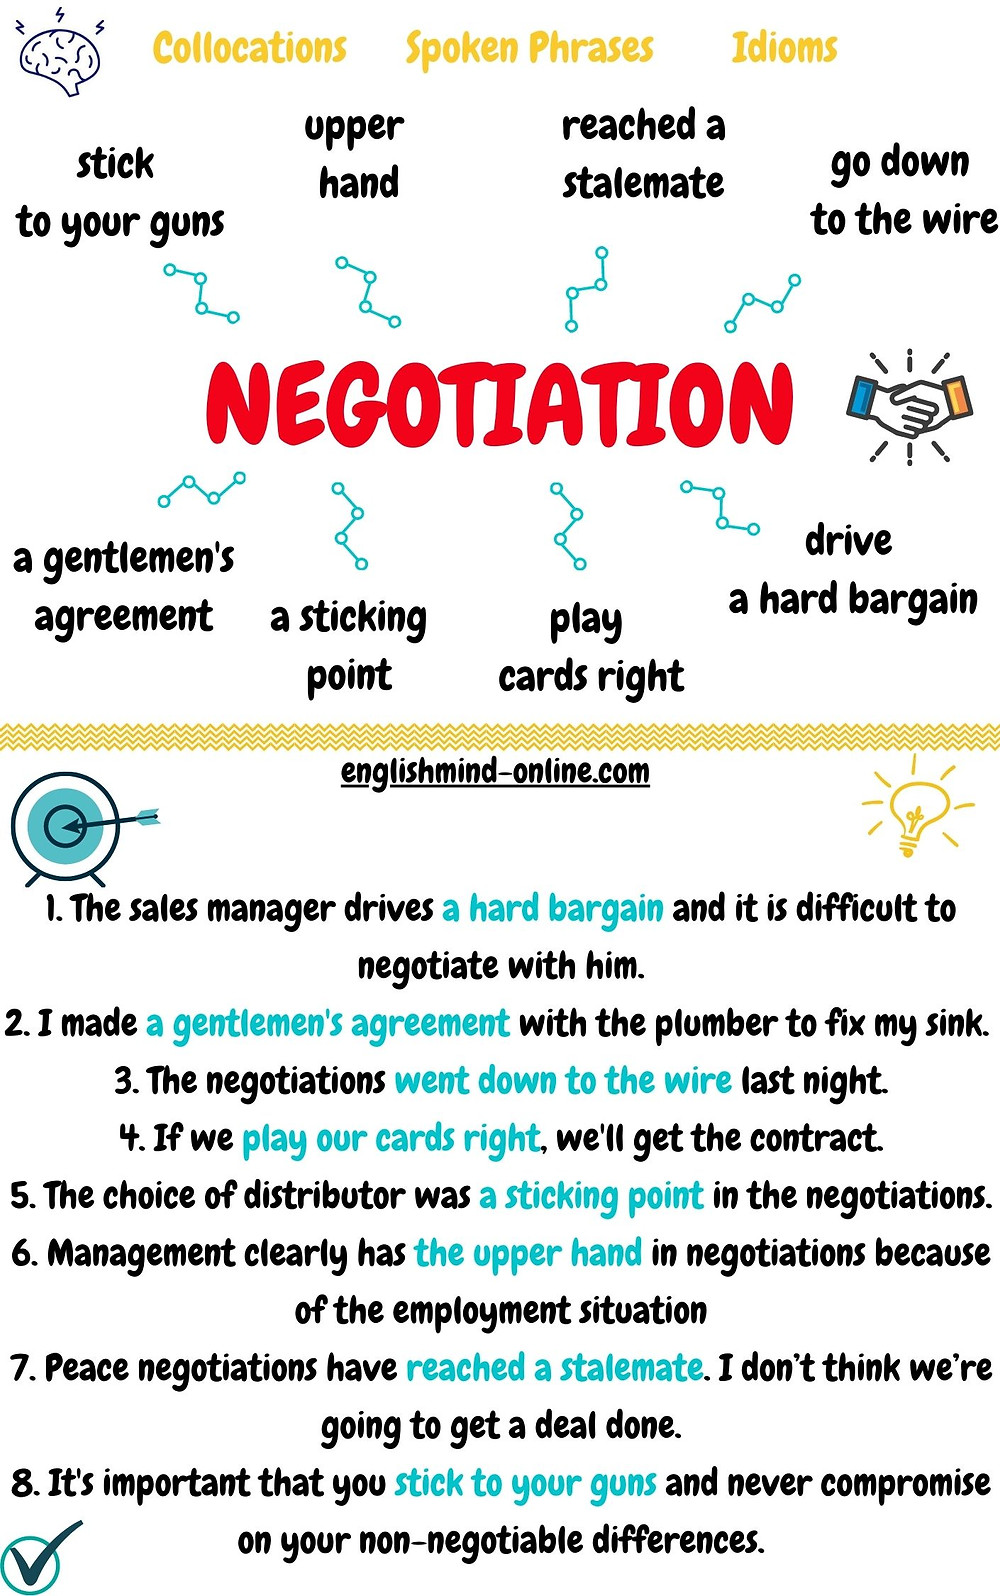 Negotiation language and phrases in English. Negotiating. Idioms and phrases